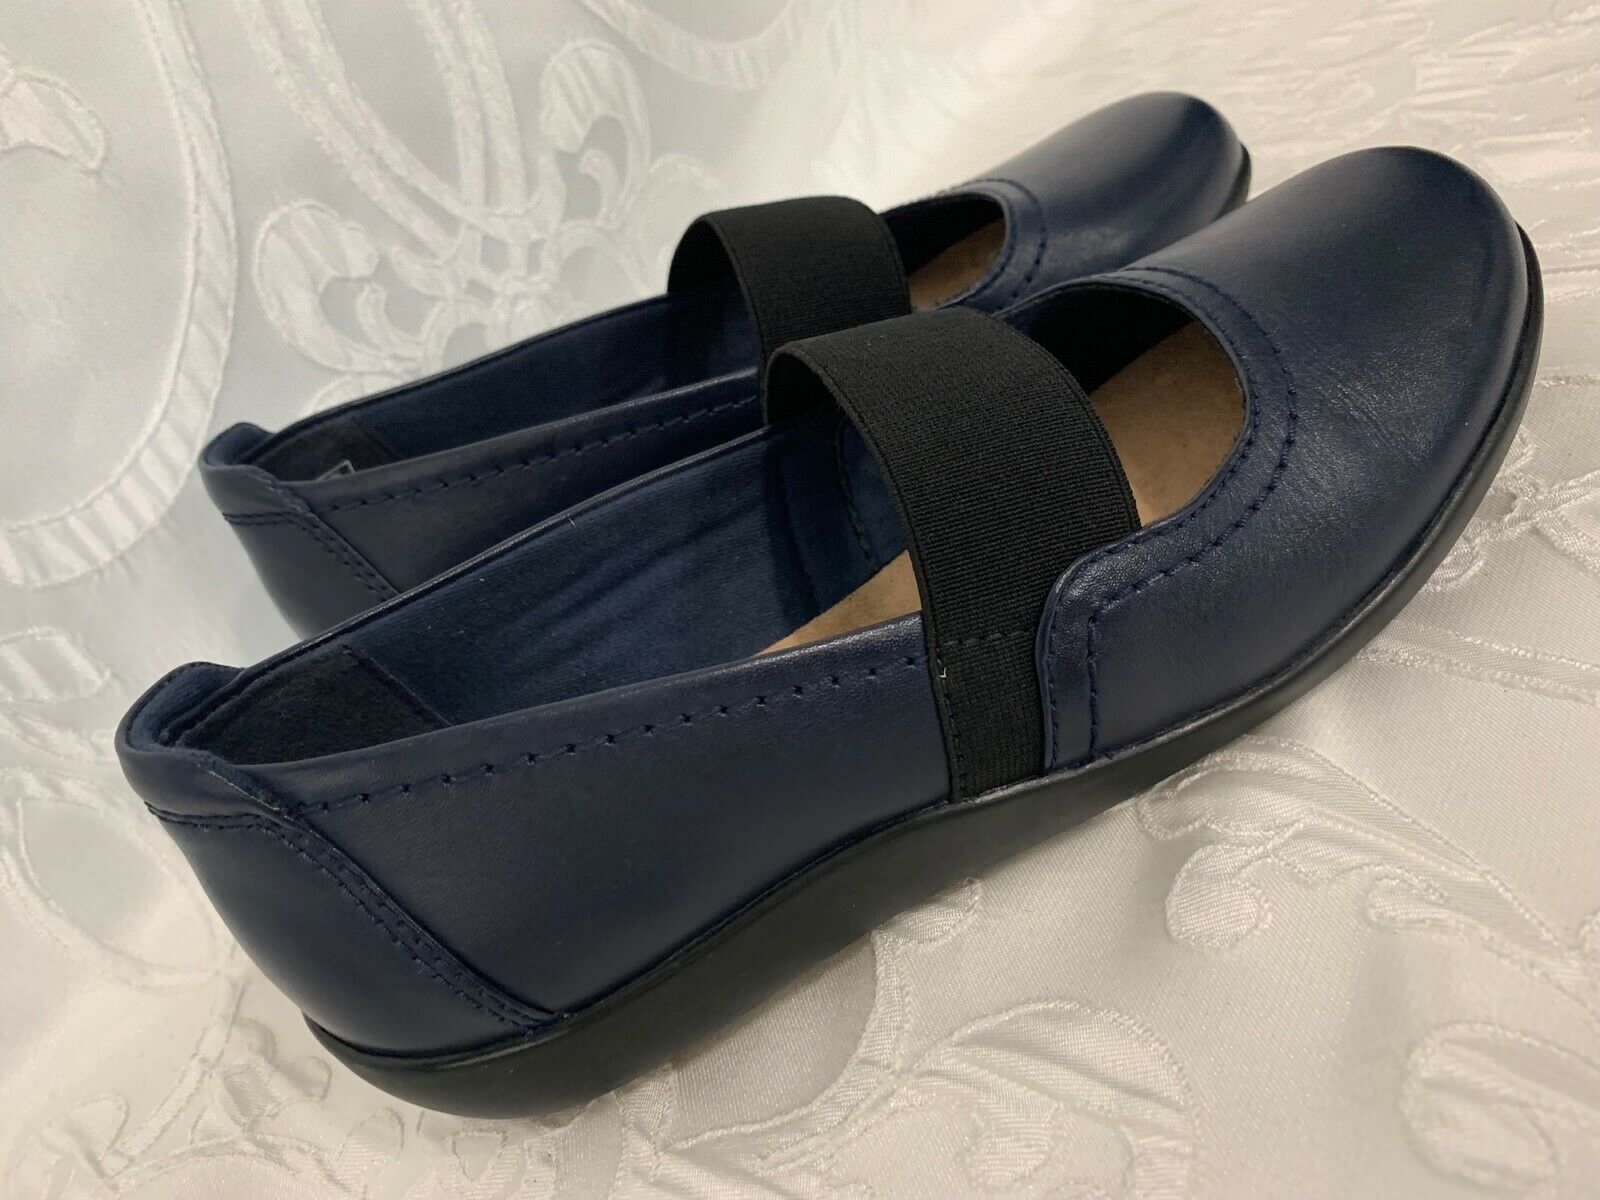 Womens CLARKS Collection Mary Jane Shoes Soft Cushion Navy Blue Size 6.5 NICE